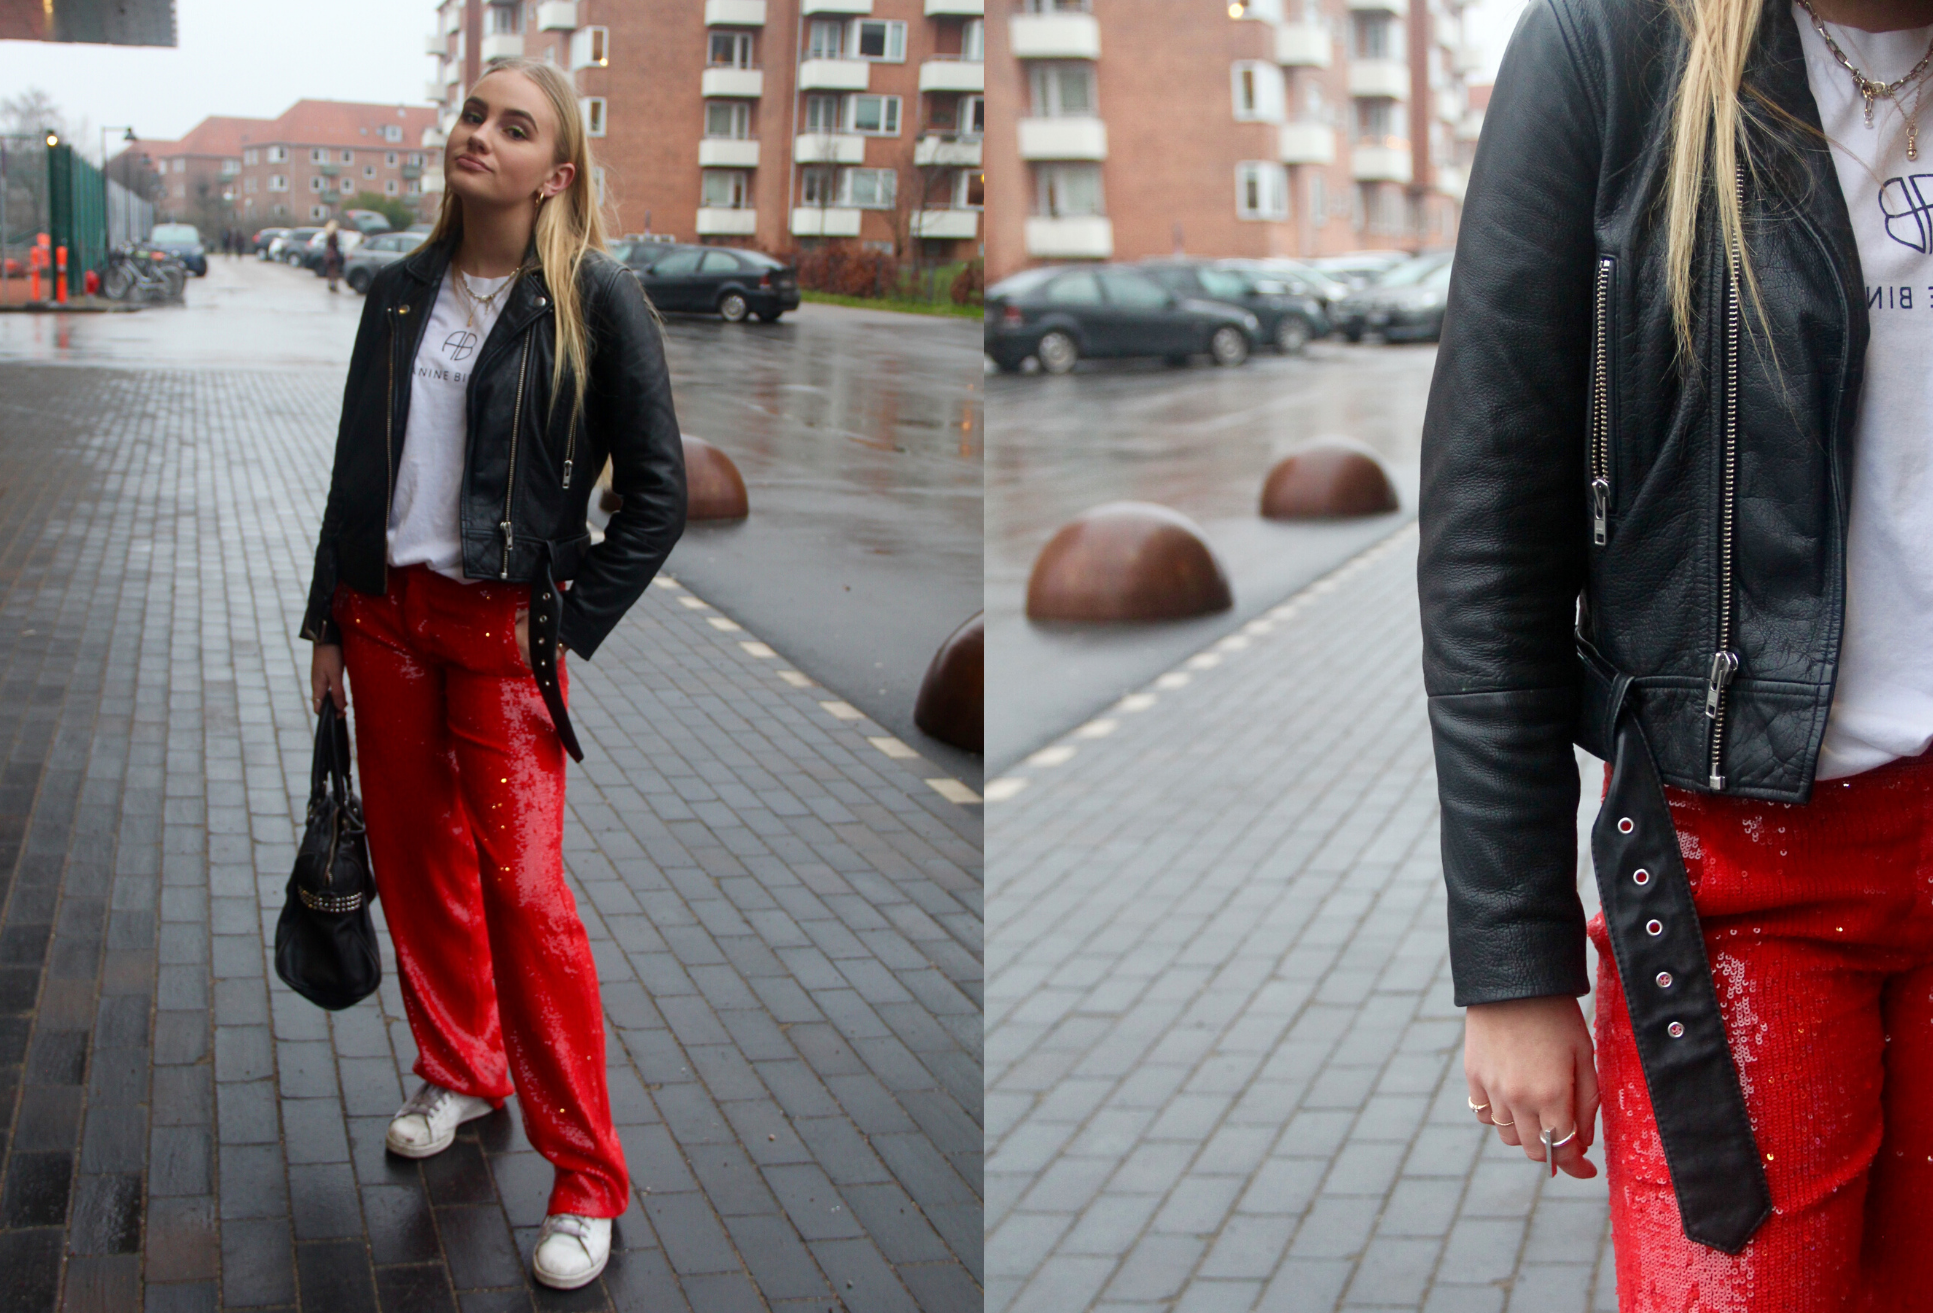 palliet bukser, rød, pige, fashion, fashion week, street style. (Foto: MY DAILY SPACE)